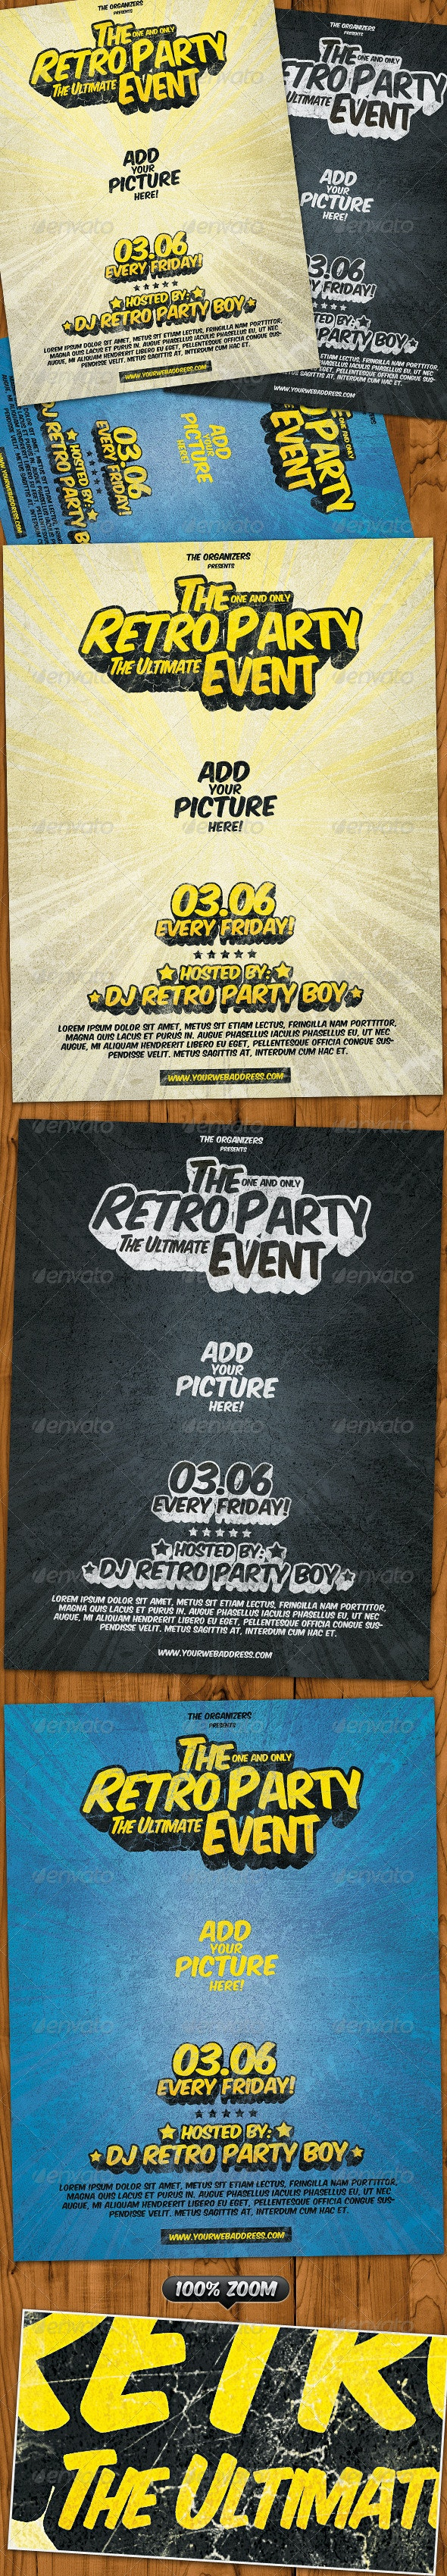 Retro Party Flyer 3 in 1 - Clubs & Parties Events